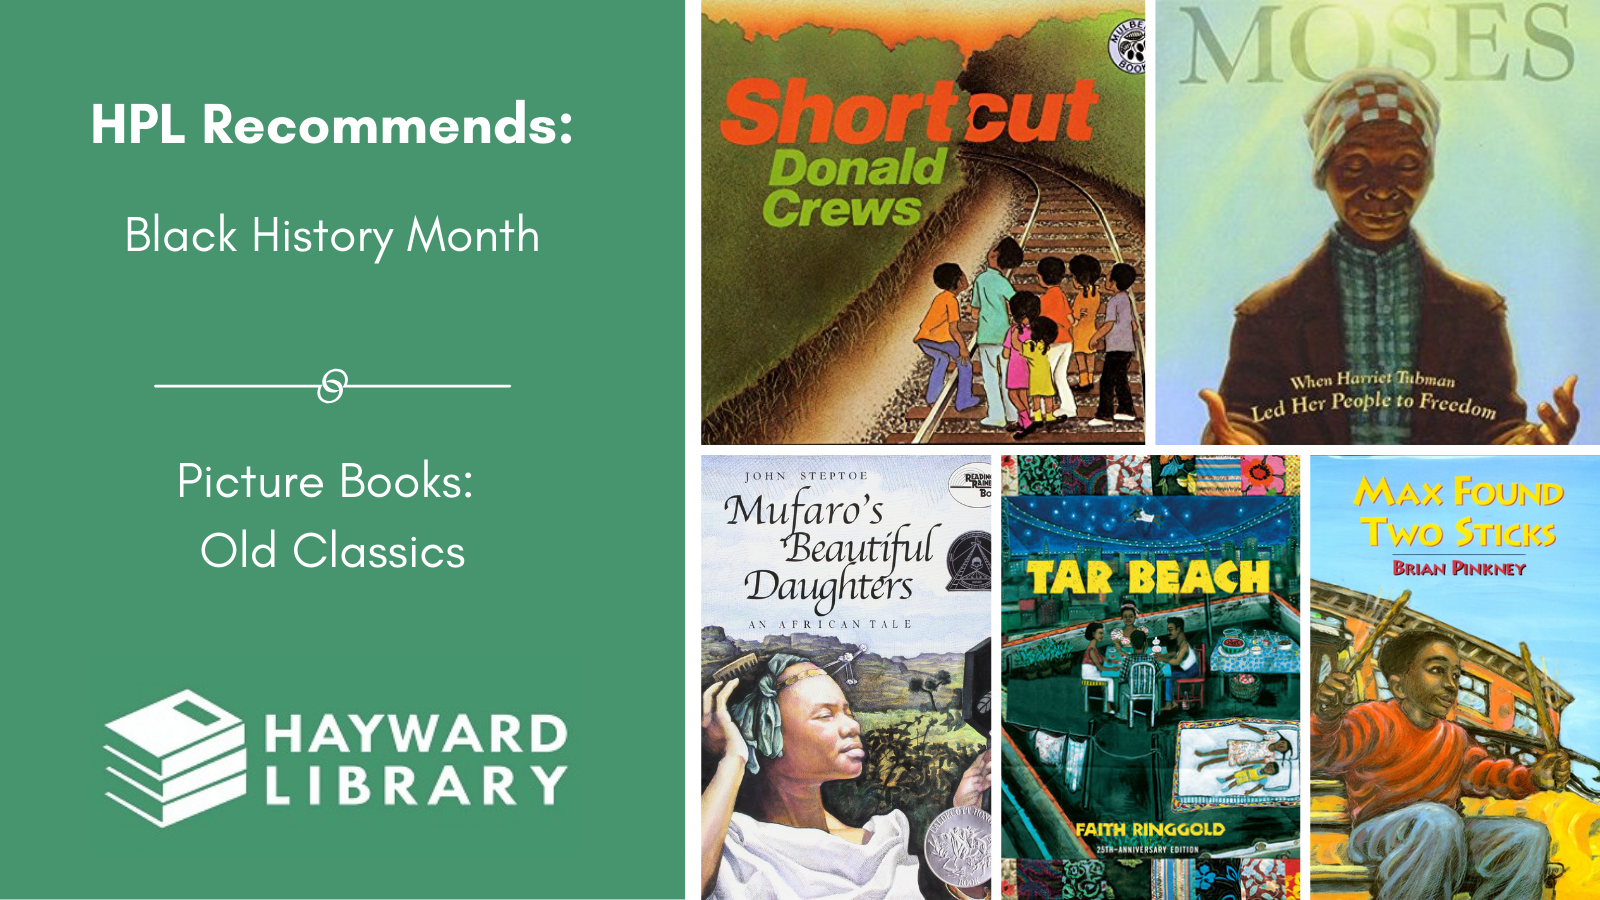 Collage of book covers with a green block on left side that says HPL Recommends, Black History Month, Picture Books: Old Classics in white text, with Hayward Library logo below it.